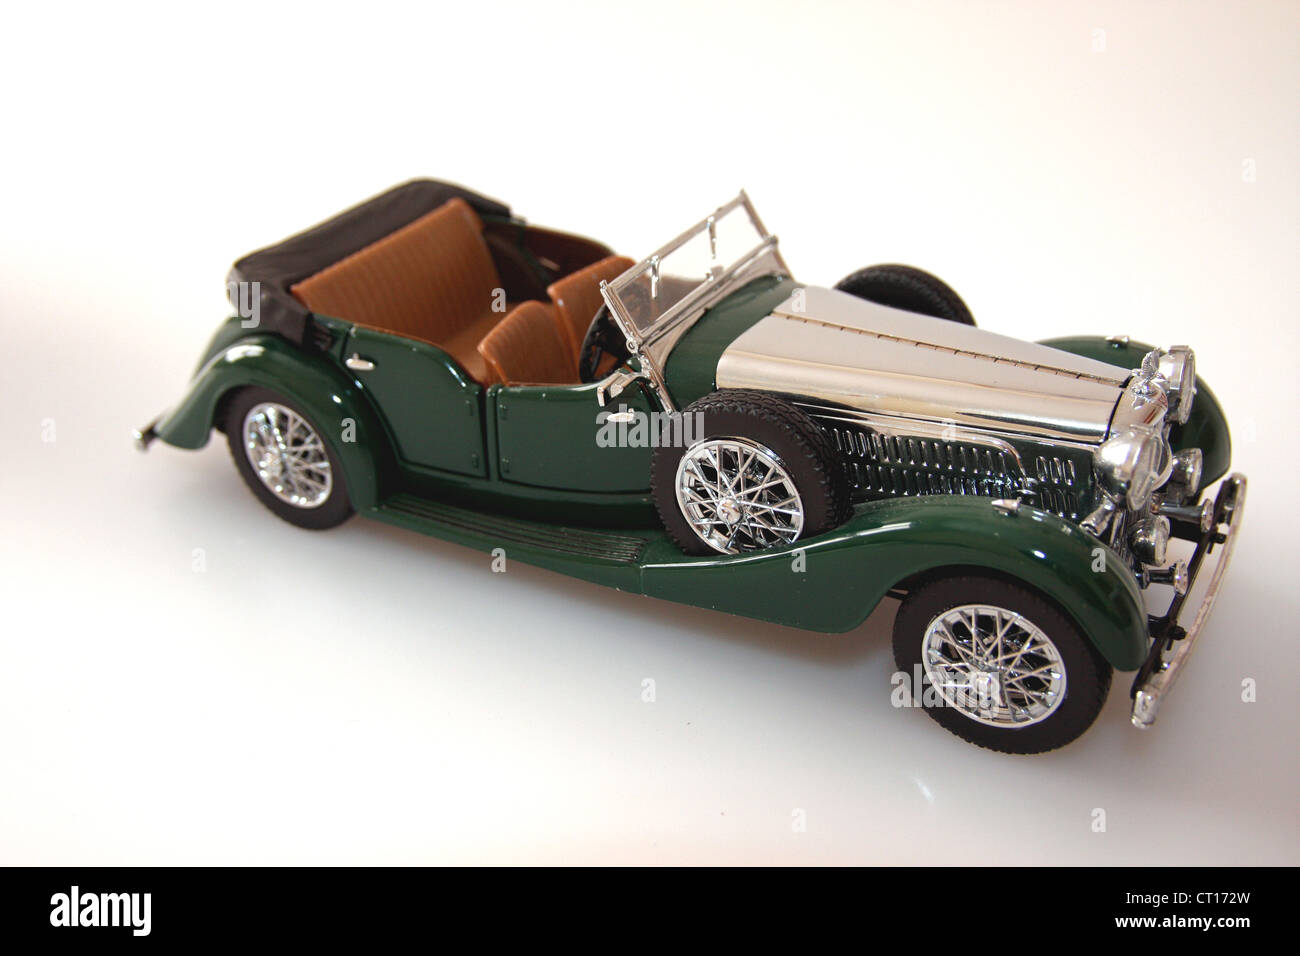 1 24 scale die cast model of a 1938 alvis 4 3 litre automobile car stock photo royalty free. Black Bedroom Furniture Sets. Home Design Ideas